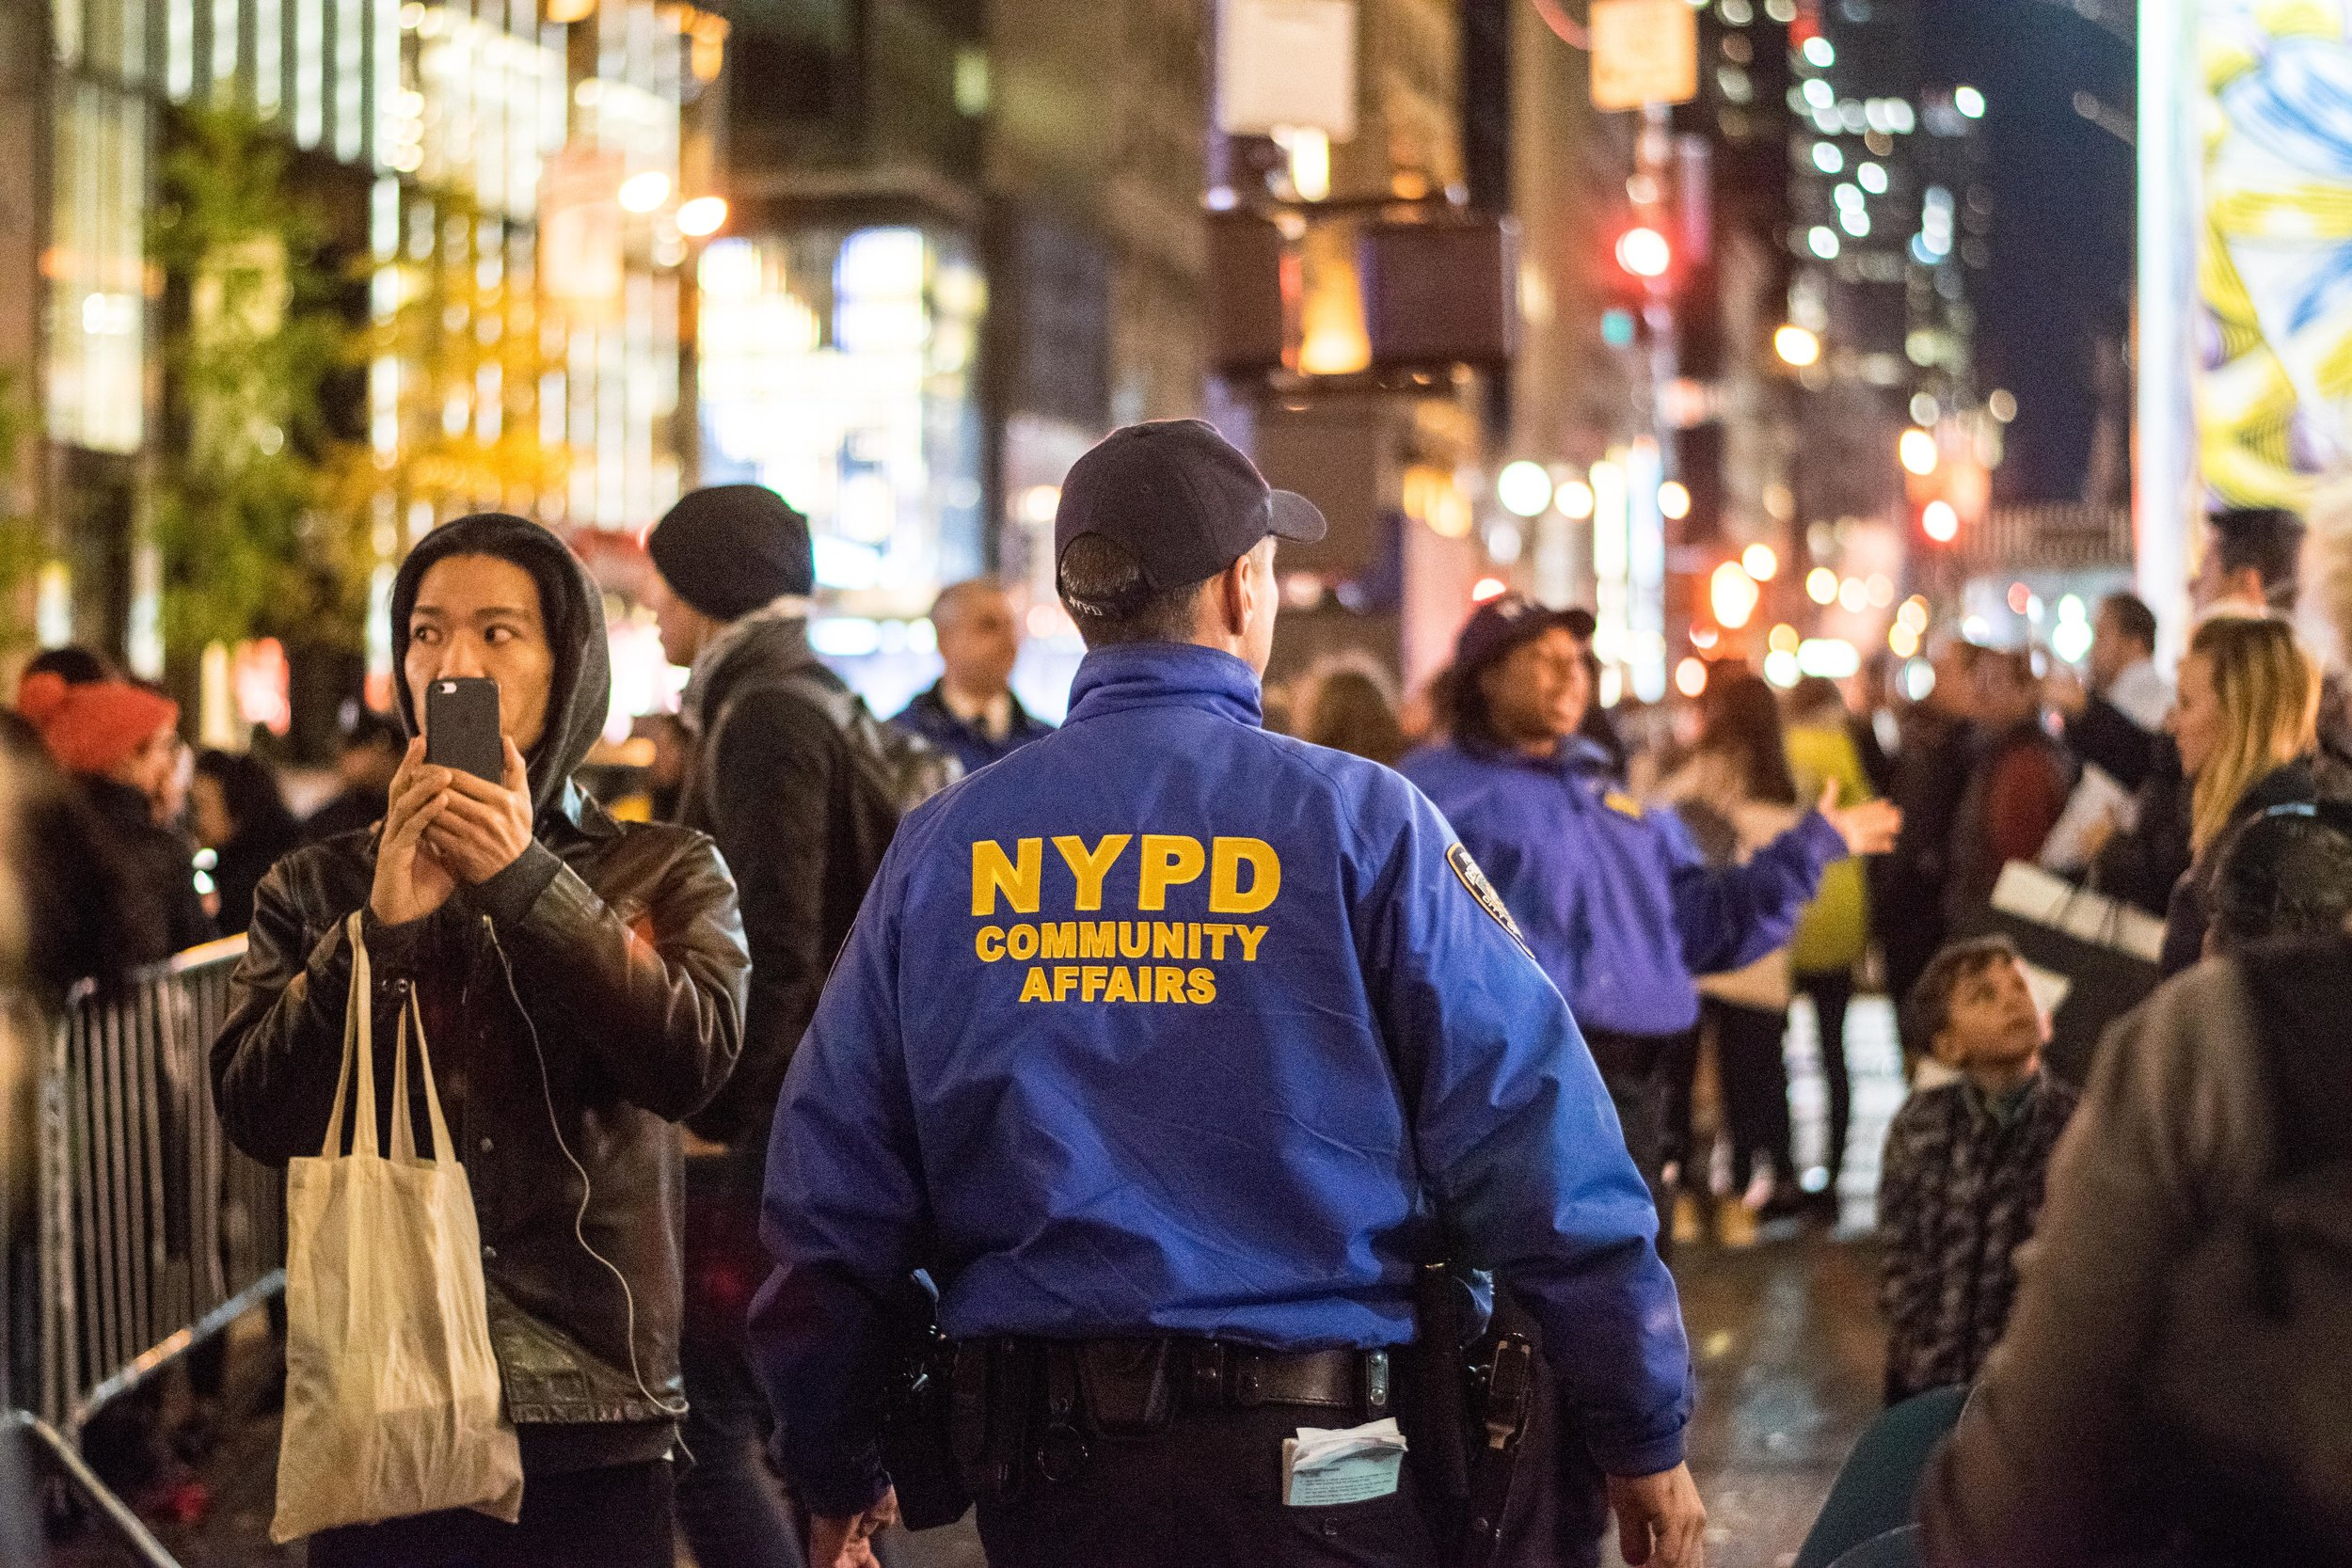 2016-NYC-New-York-Trump-Protest-March-Police-NYPD-Cops-Community-Affairs